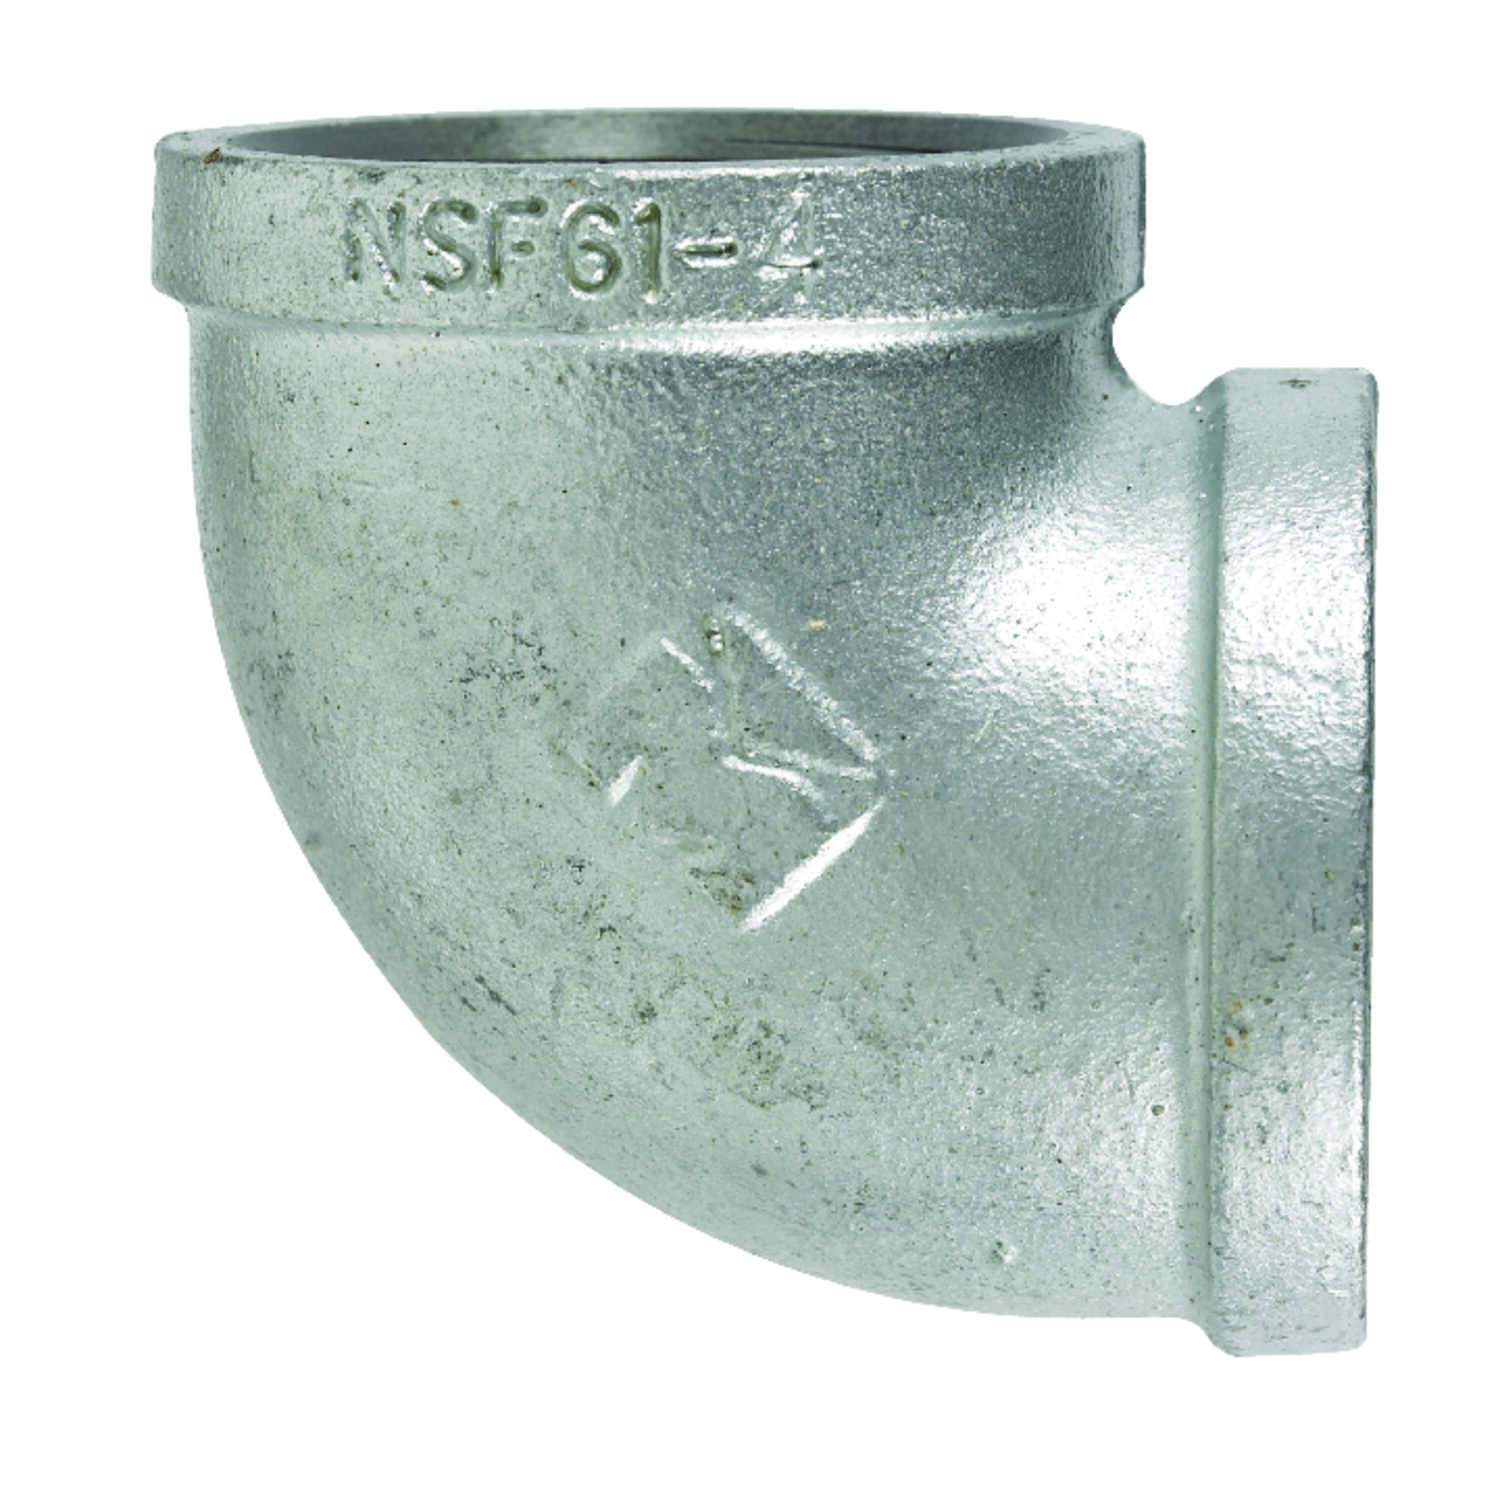 B & K  1-1/2 in. FPT   x 1-1/2 in. Dia. FPT  Galvanized  Malleable Iron  Elbow